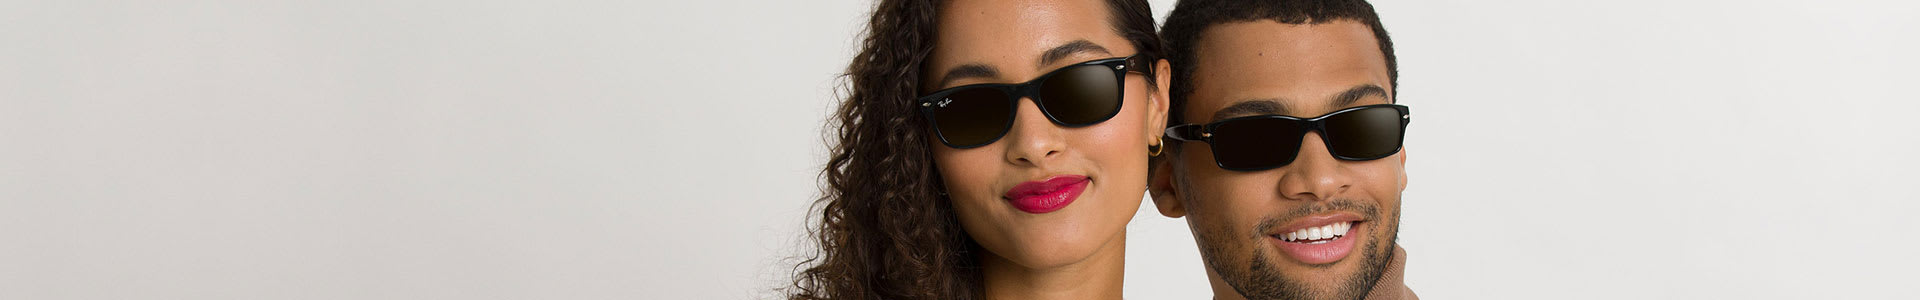 Shop Sunglasses - featuring Ray-Ban RB2132 - New Wayfarer and Persol PO2747S